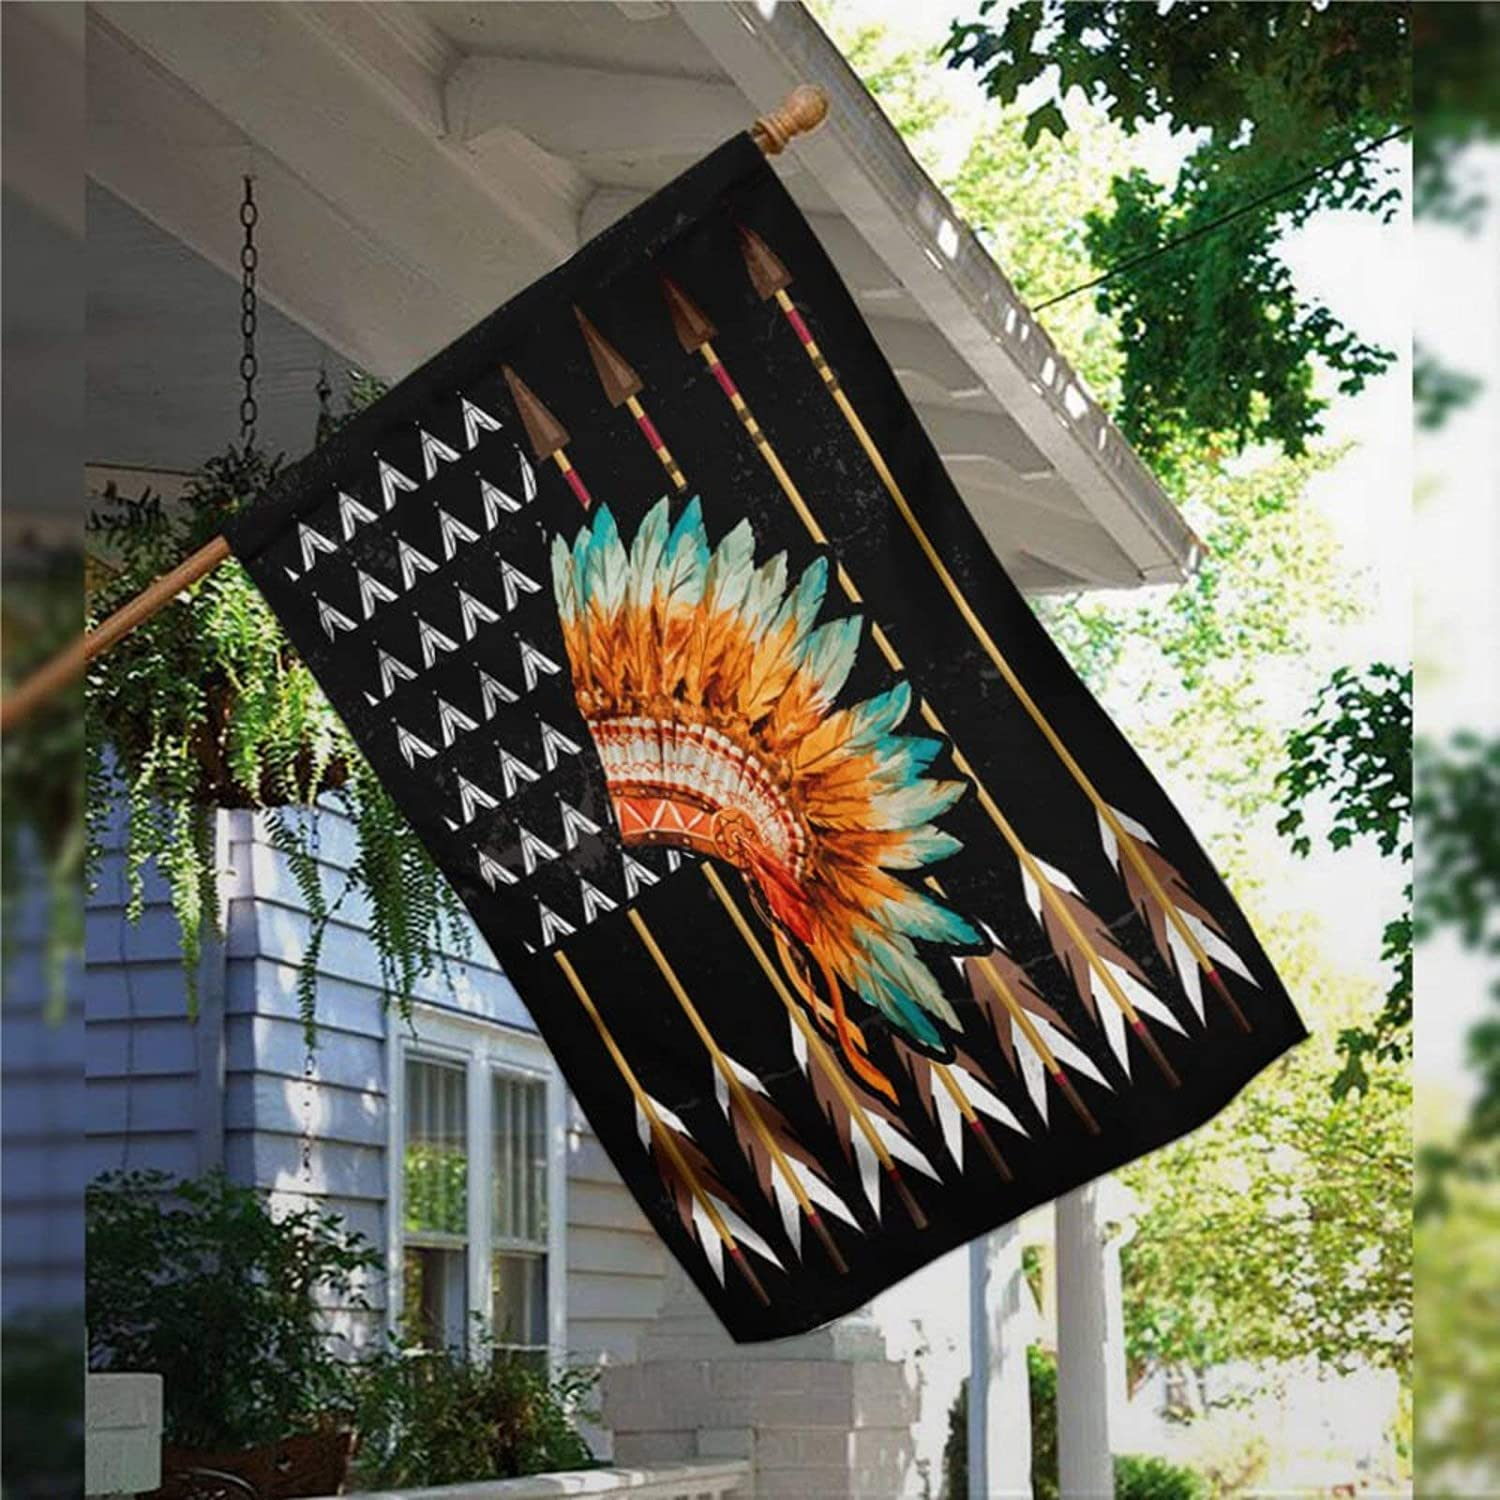 Garden Flag Native American Flag, Rustic House Peace Flag Yard Decor House Decor Flag Seasonal Banners for Patio Lawn Outdoor 28x40""